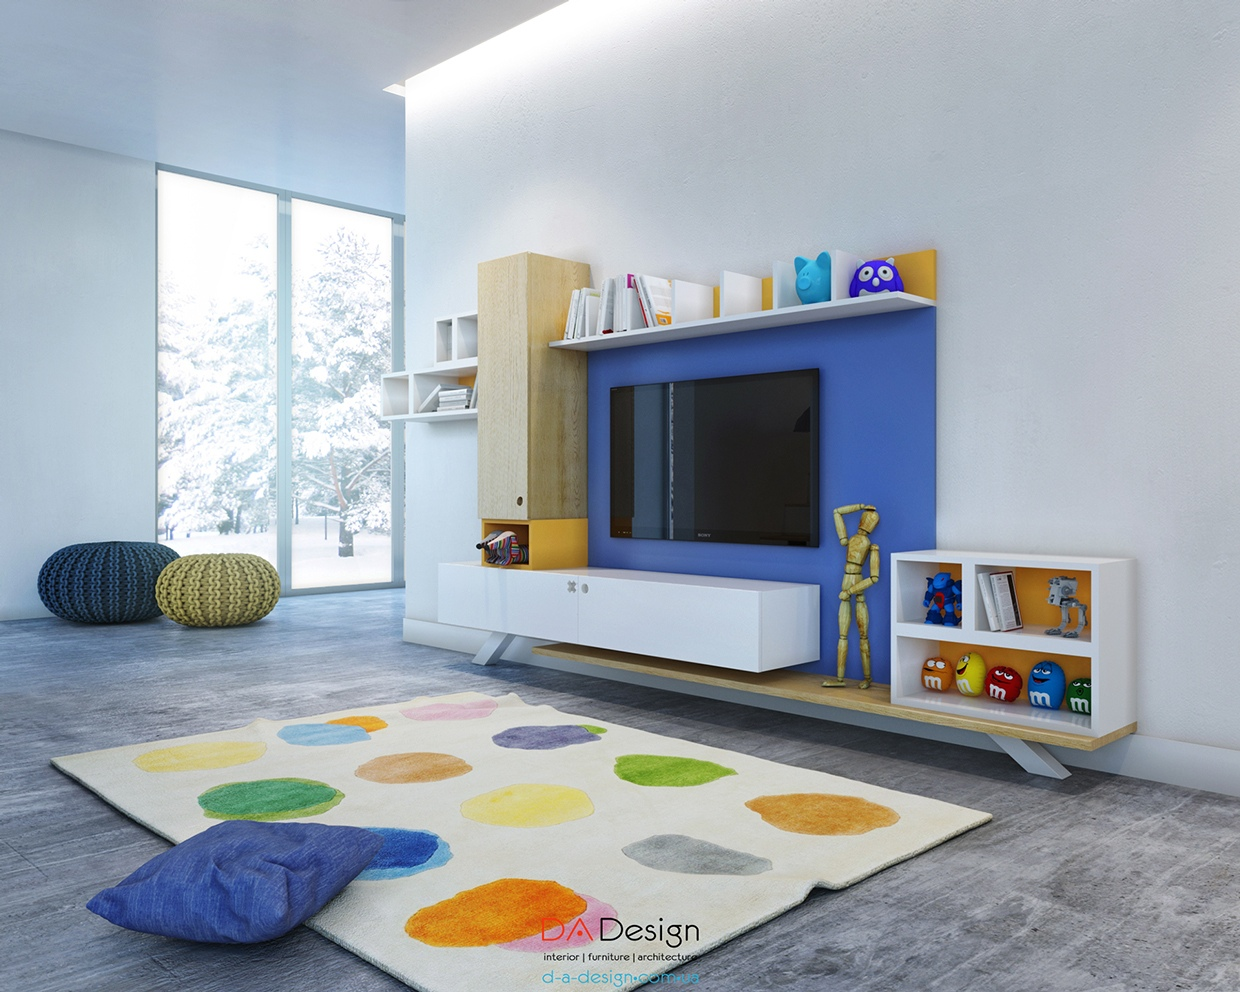 Kids playroom ideas interior design ideas for Kids play rooms